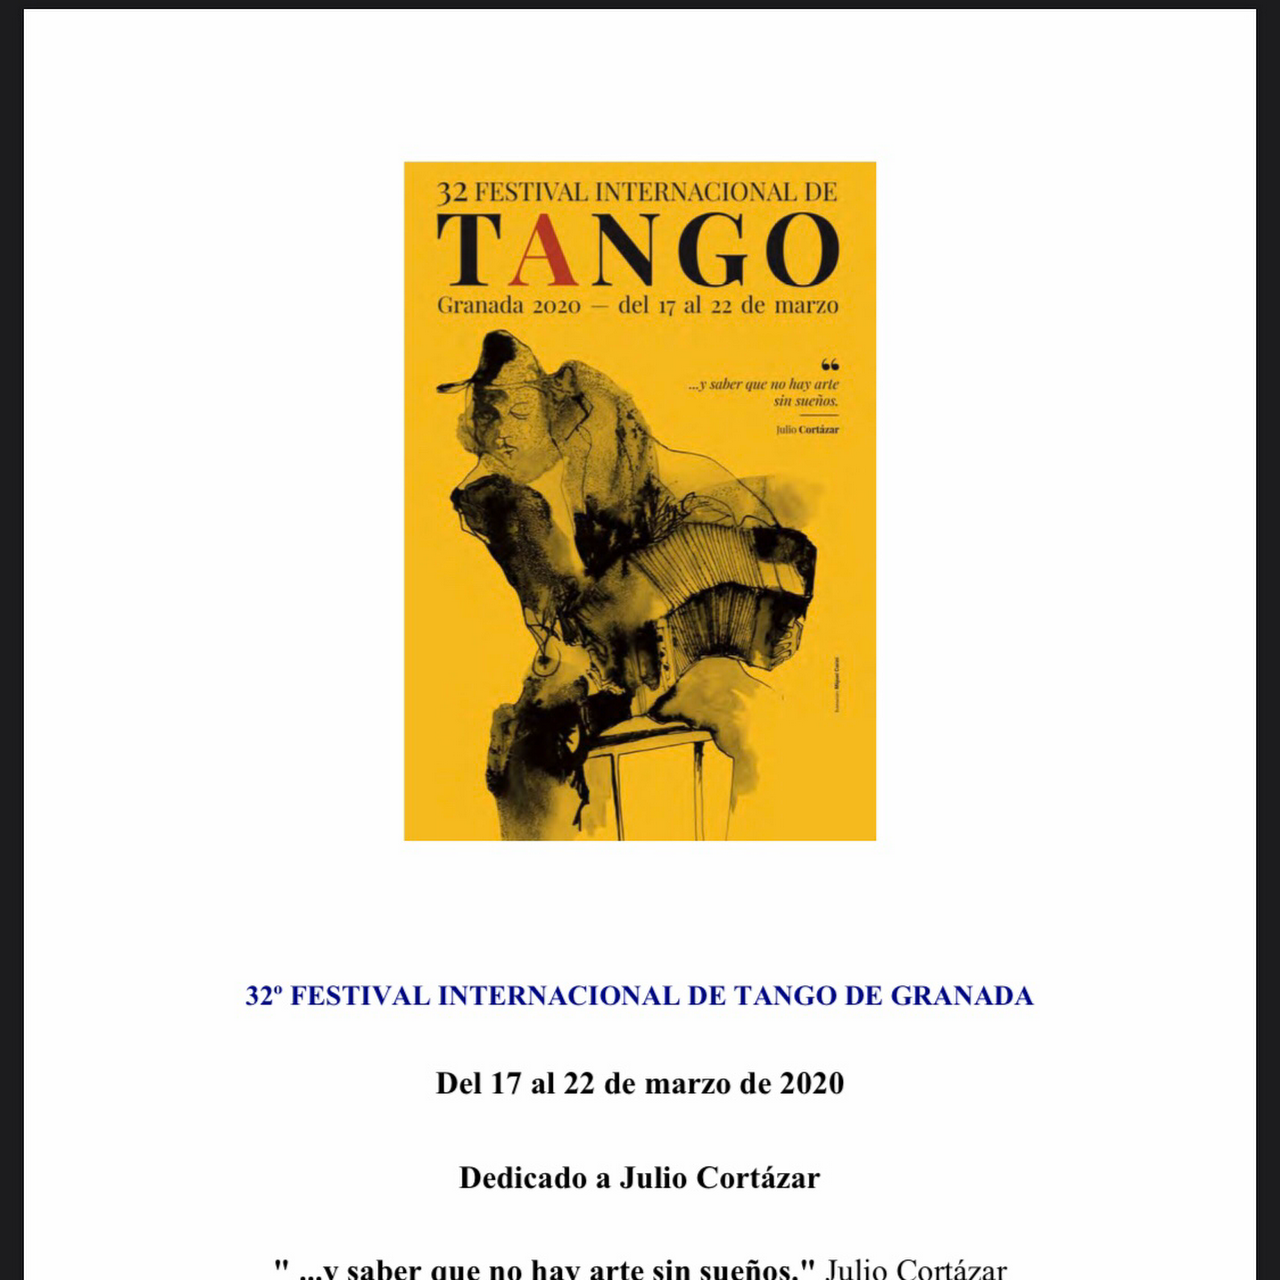 The Granada International Tangofestival 2020